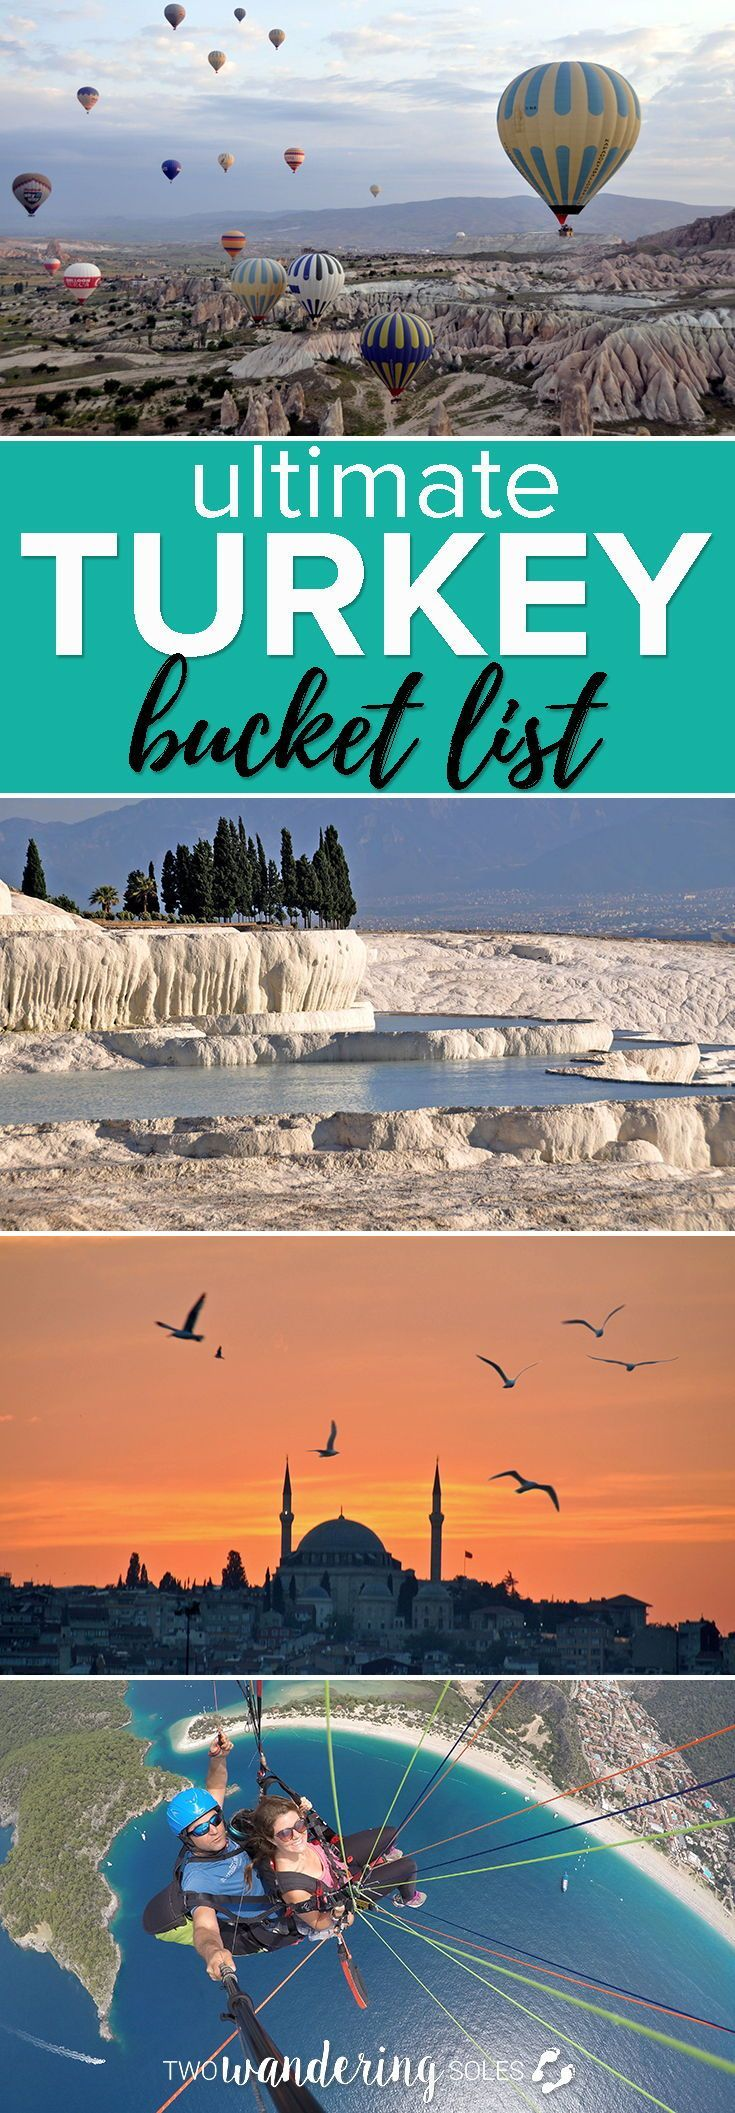 15 Epic Places to Visit In Turkey Turkey is a coun…